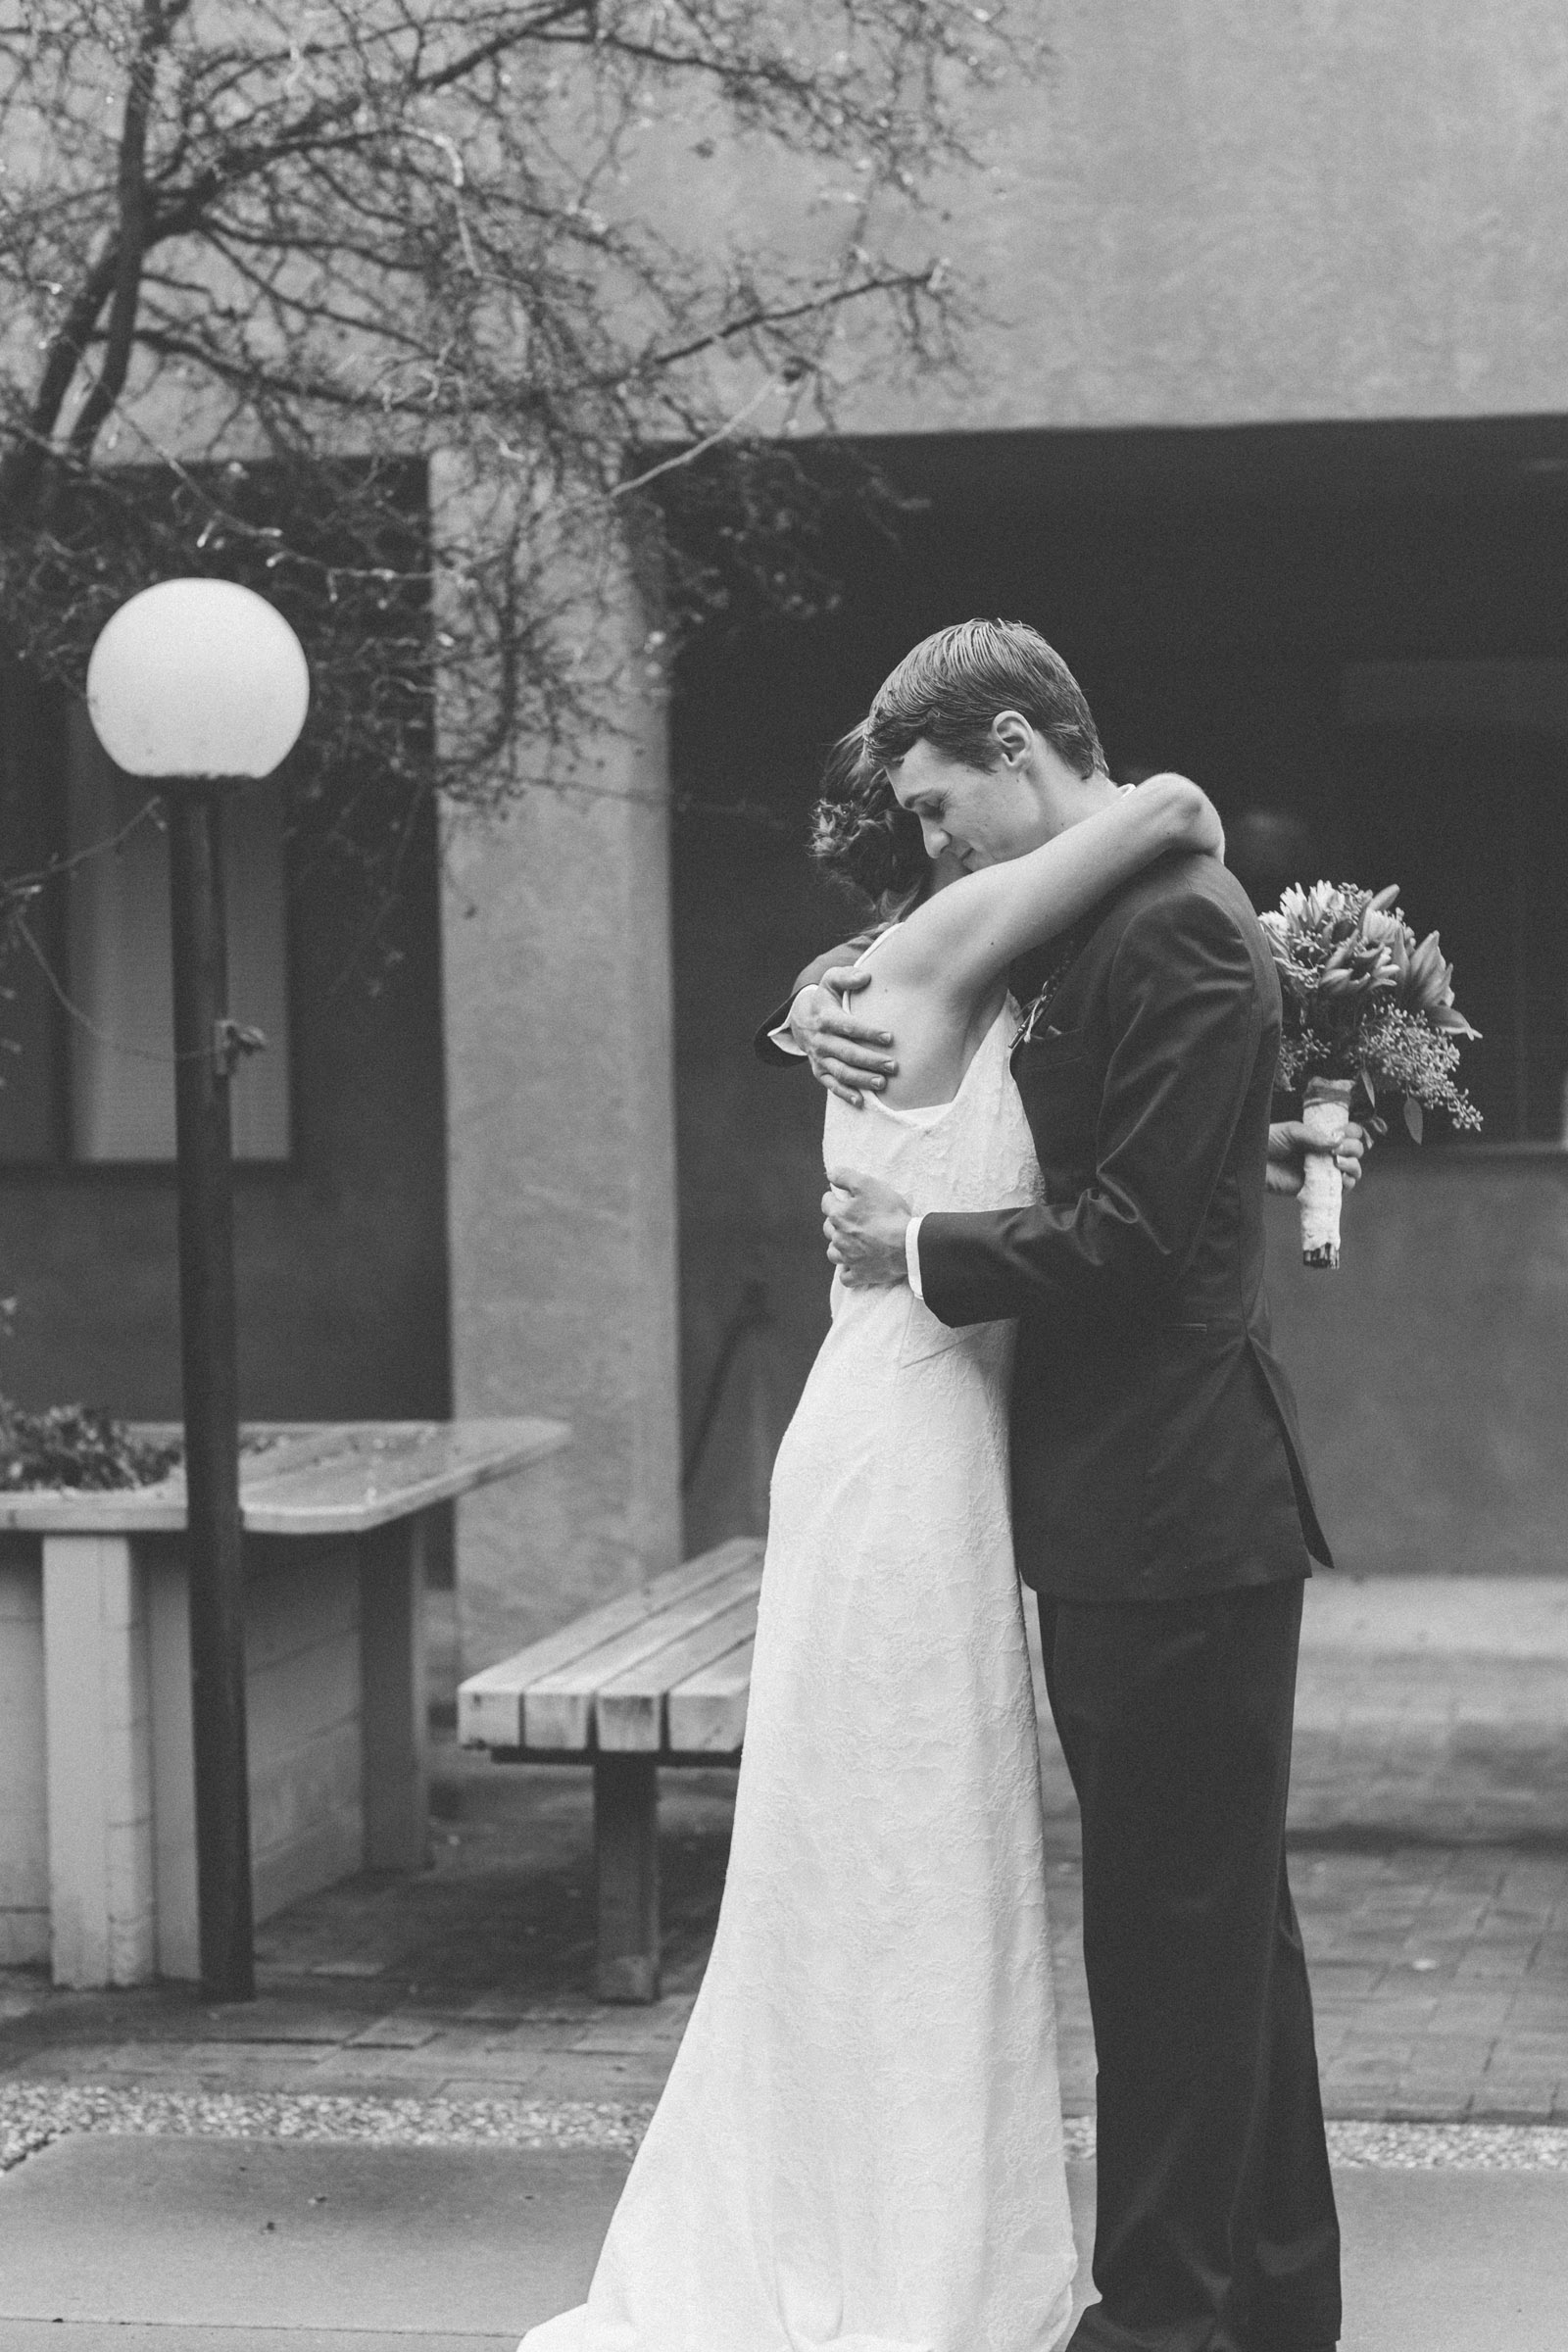 047-bride-and-groom-see-eachother-in-first-look-in-courtyard-before-the-ceremony-in-albuquerque-nm